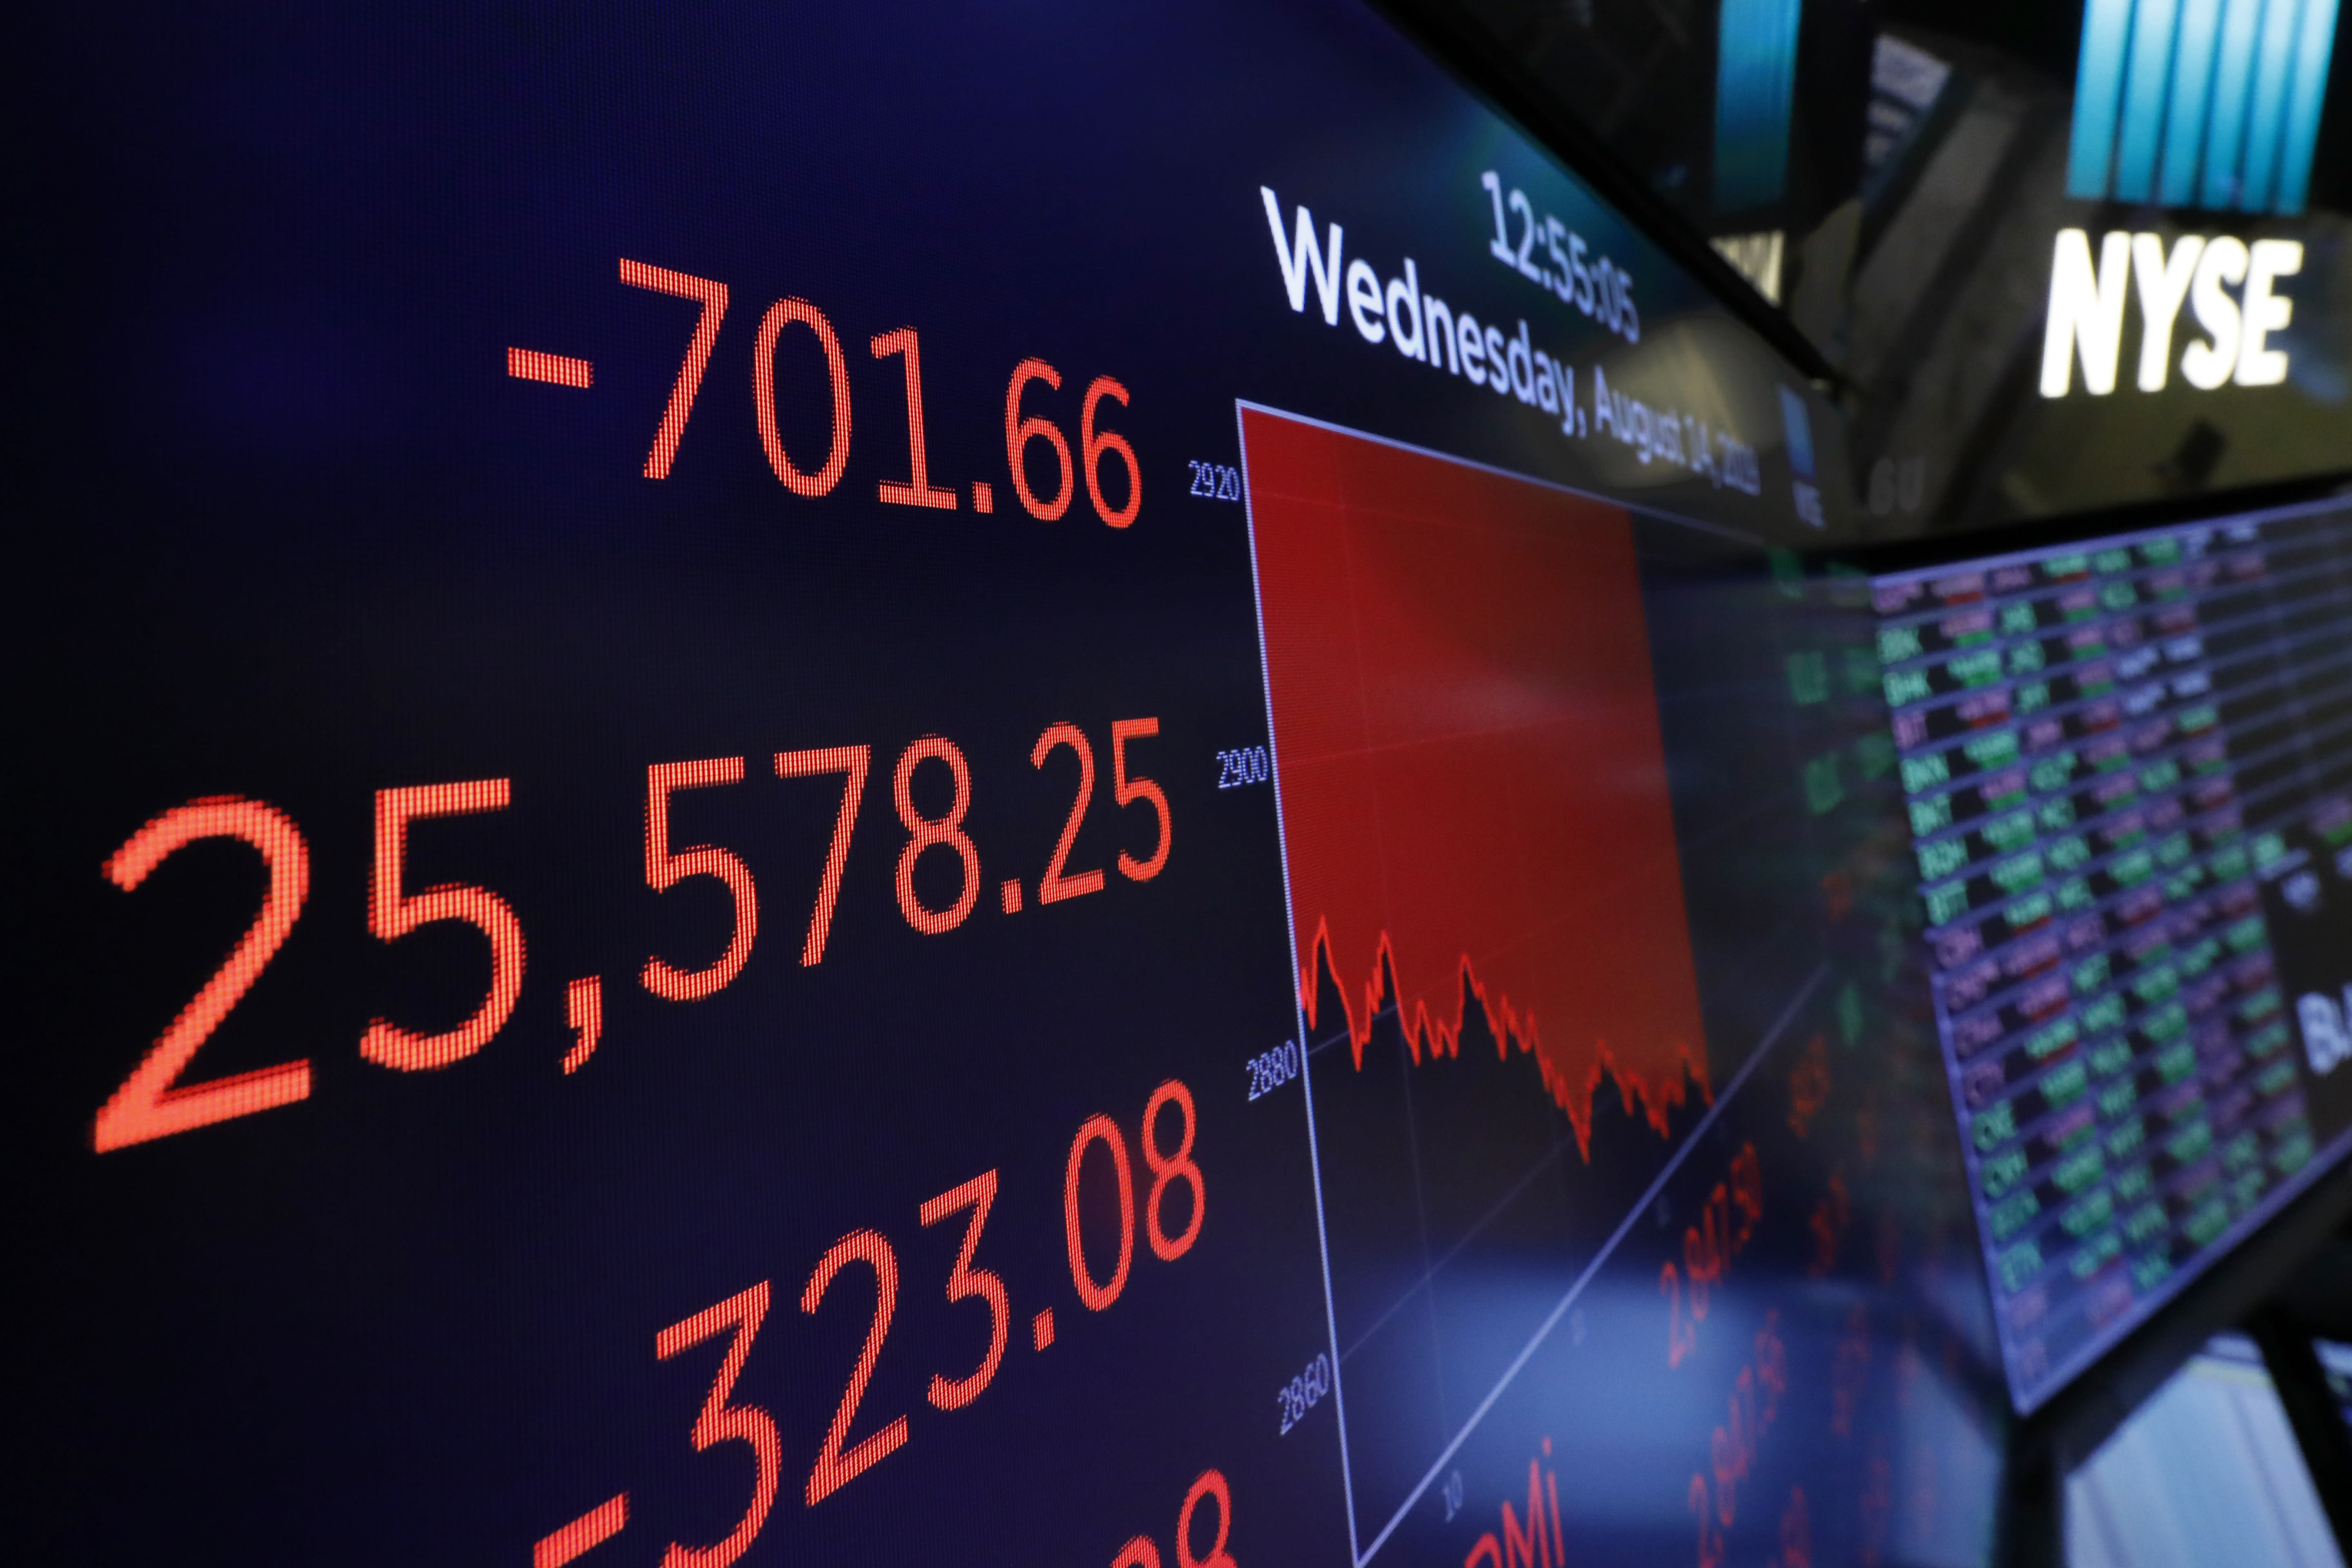 Selloff on Wall Street as recession fears take hold